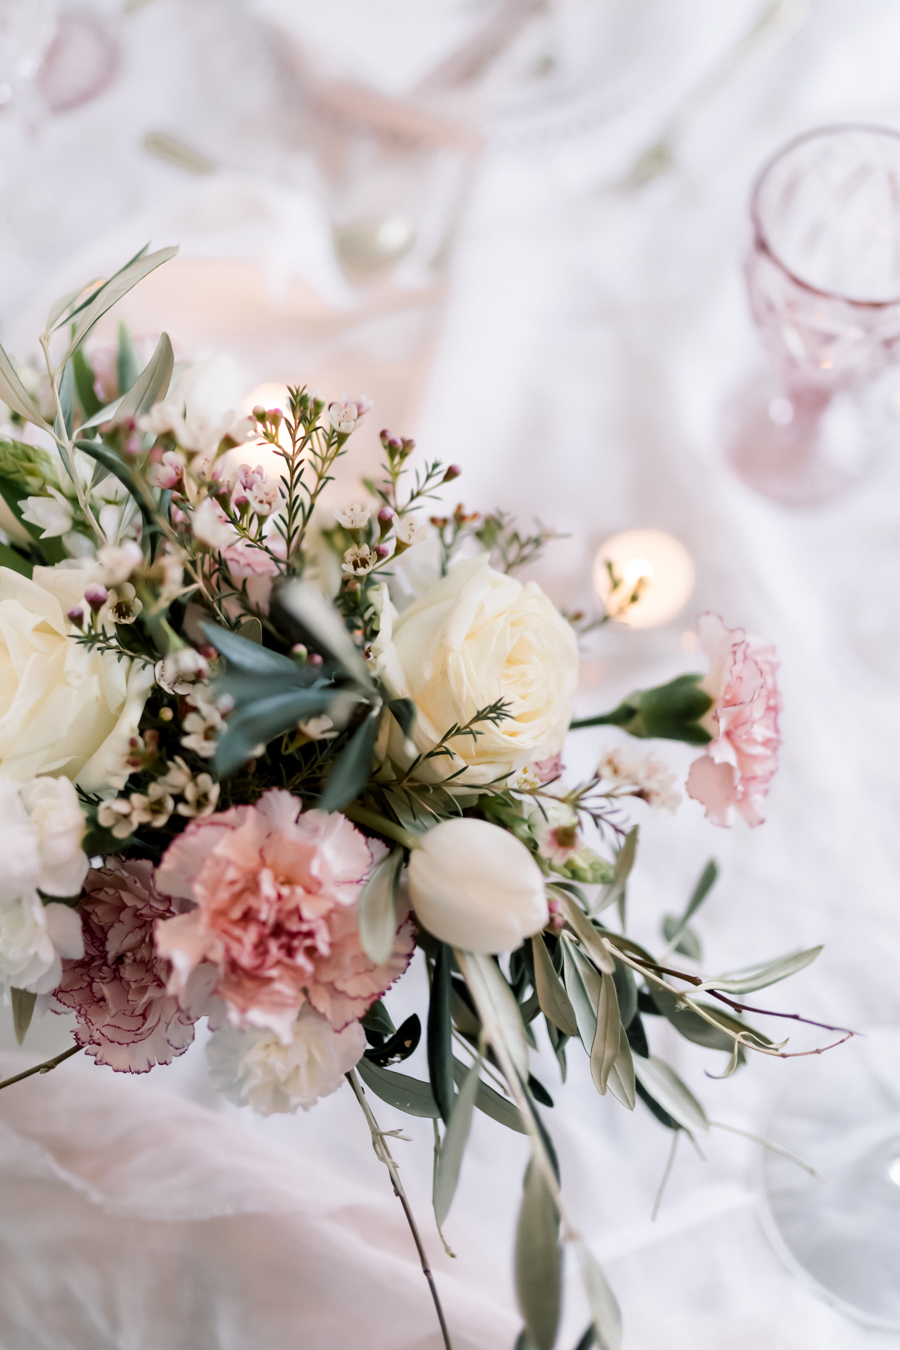 Spring blossom wedding style inspiration and ideas with Chloe Ely Photography at Barton Court (37)